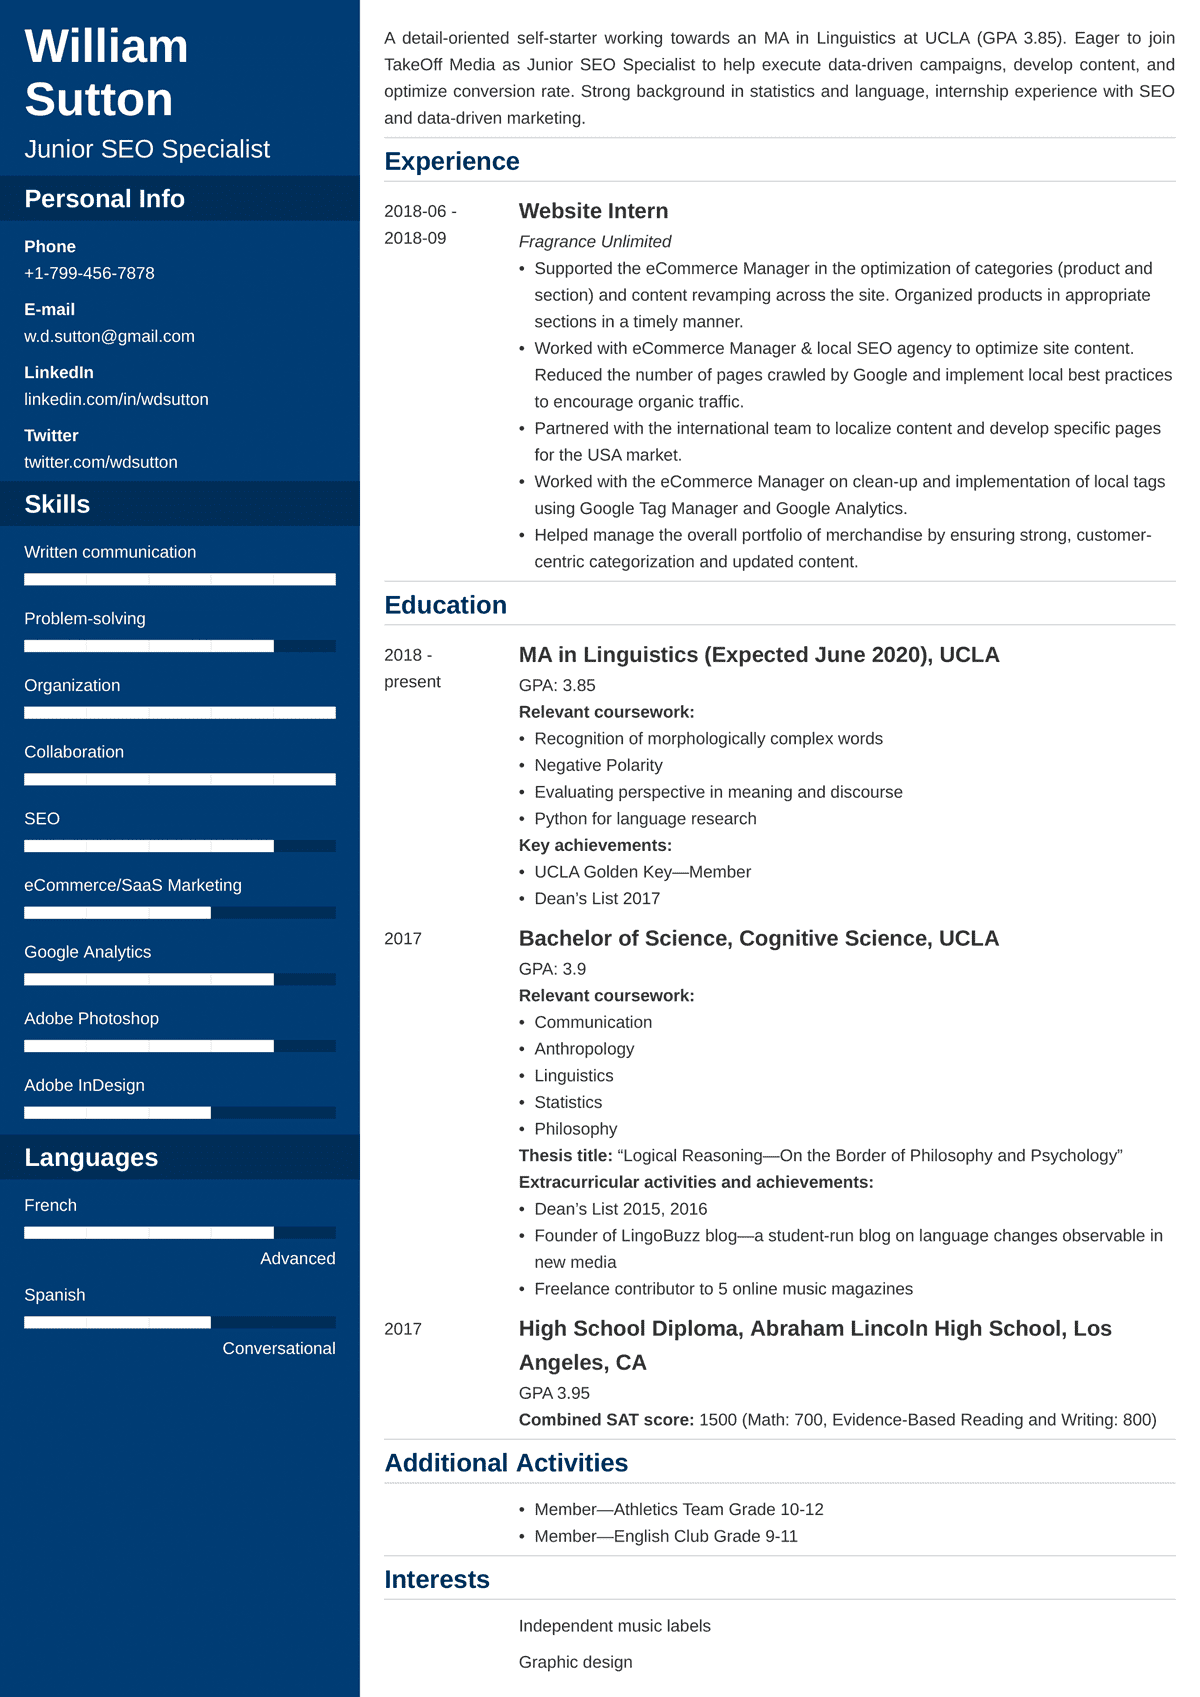 Student Resume Templates Examples For Students In 2021